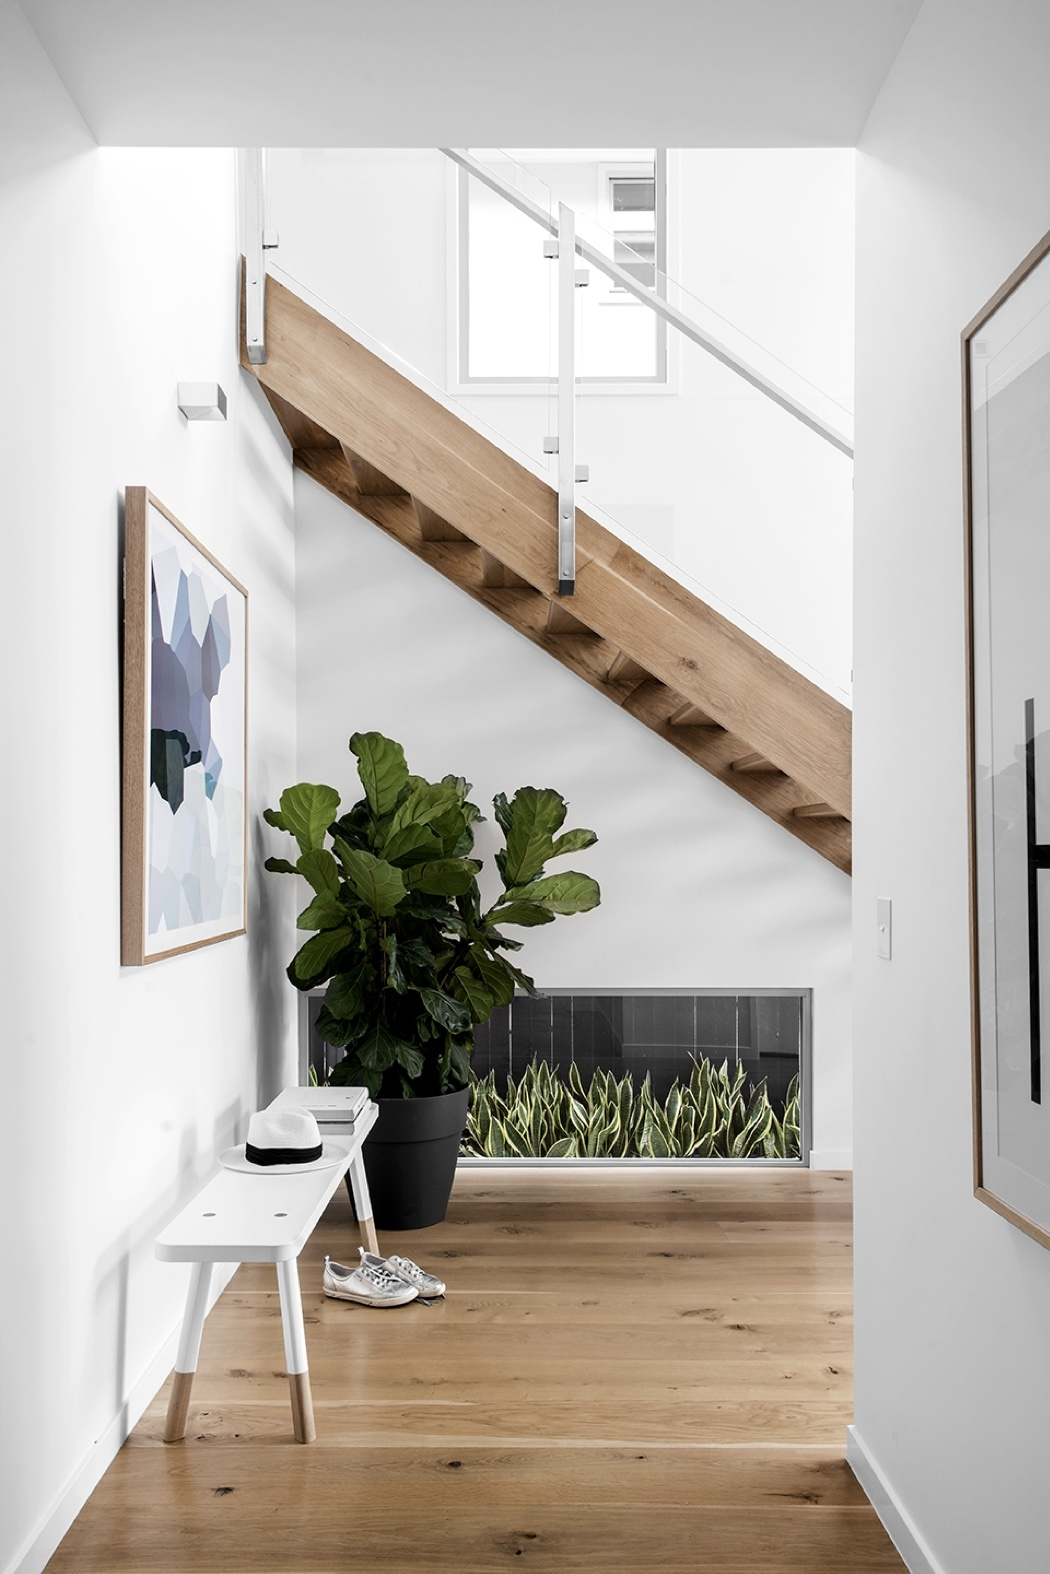 Brisbane custom home builder Kalka | Scandinavian style open tread staircase | Wooloowin display home